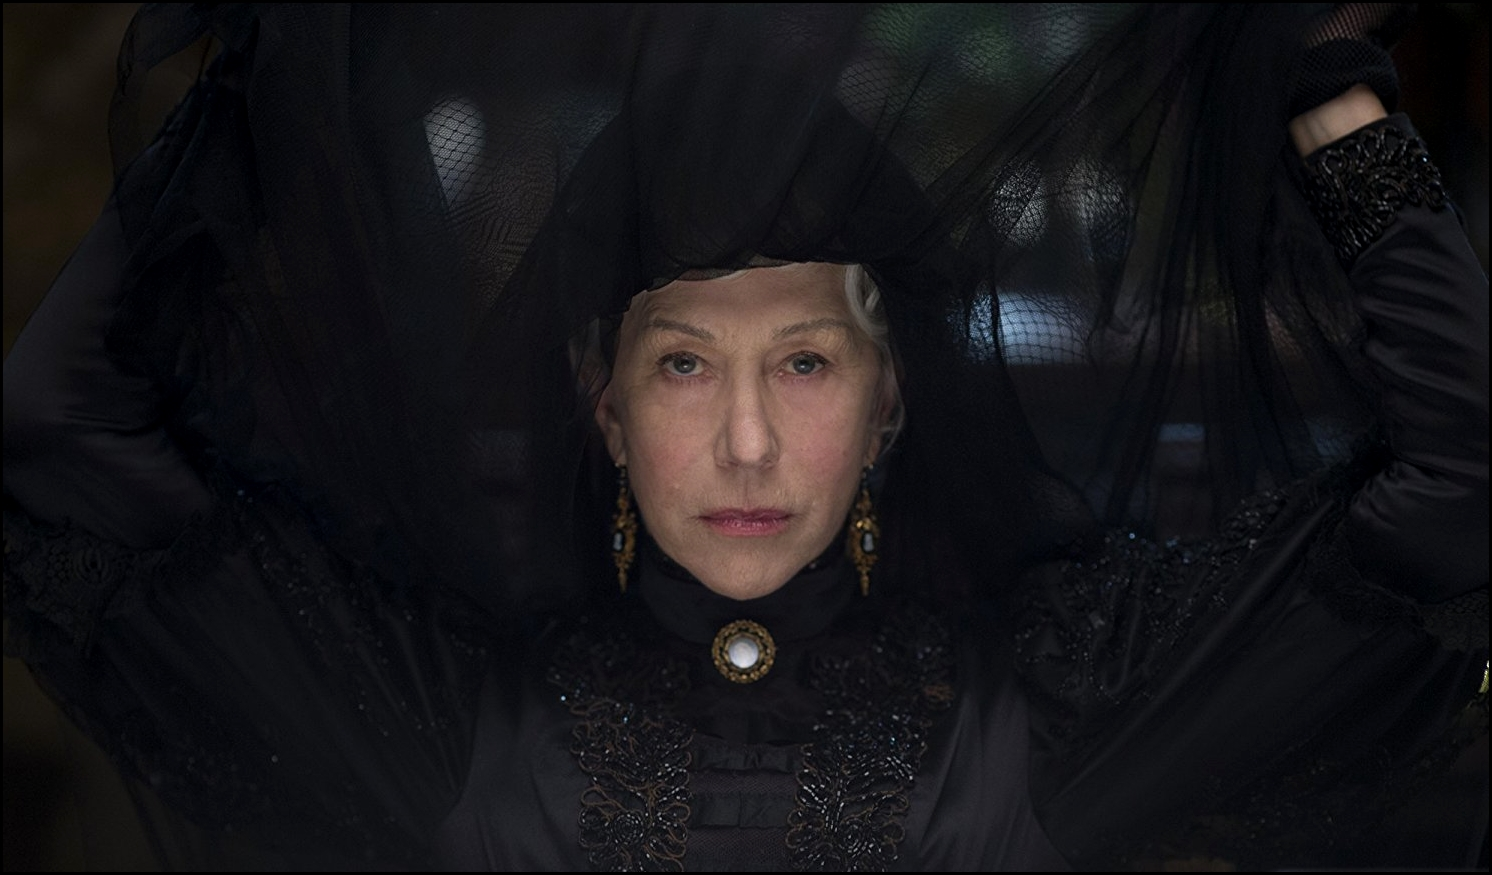 woman in black supernatural powers Evidence for human belief in the supernatural can be found as far back  universe where human rituals and actions can affect the gods and powers running our.